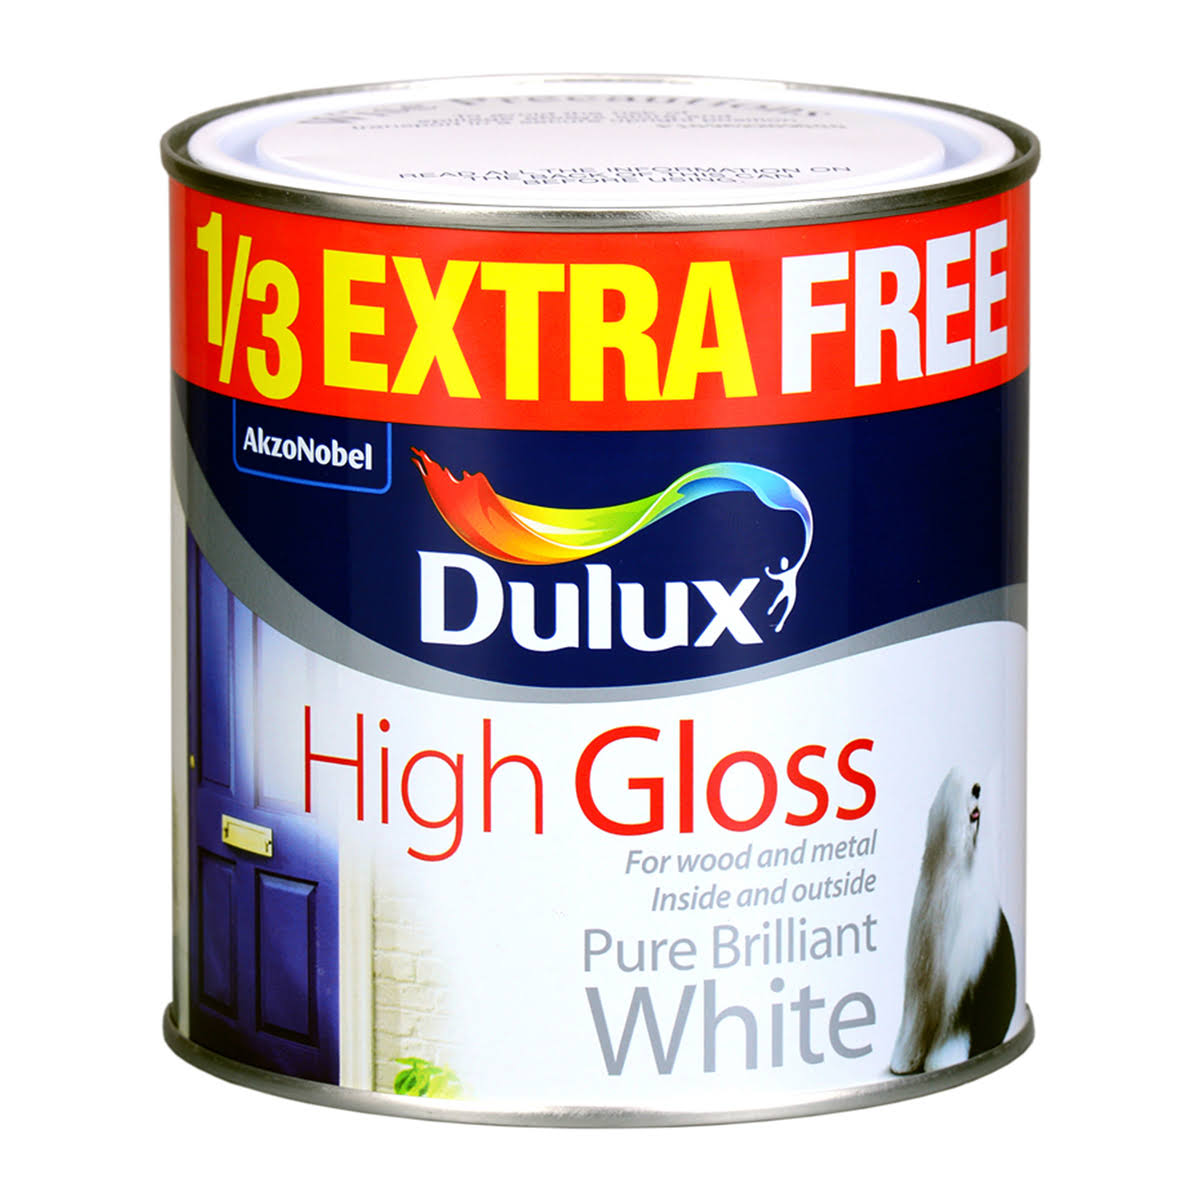 Dulux High Gloss Paint White 1Ltr (846HK)